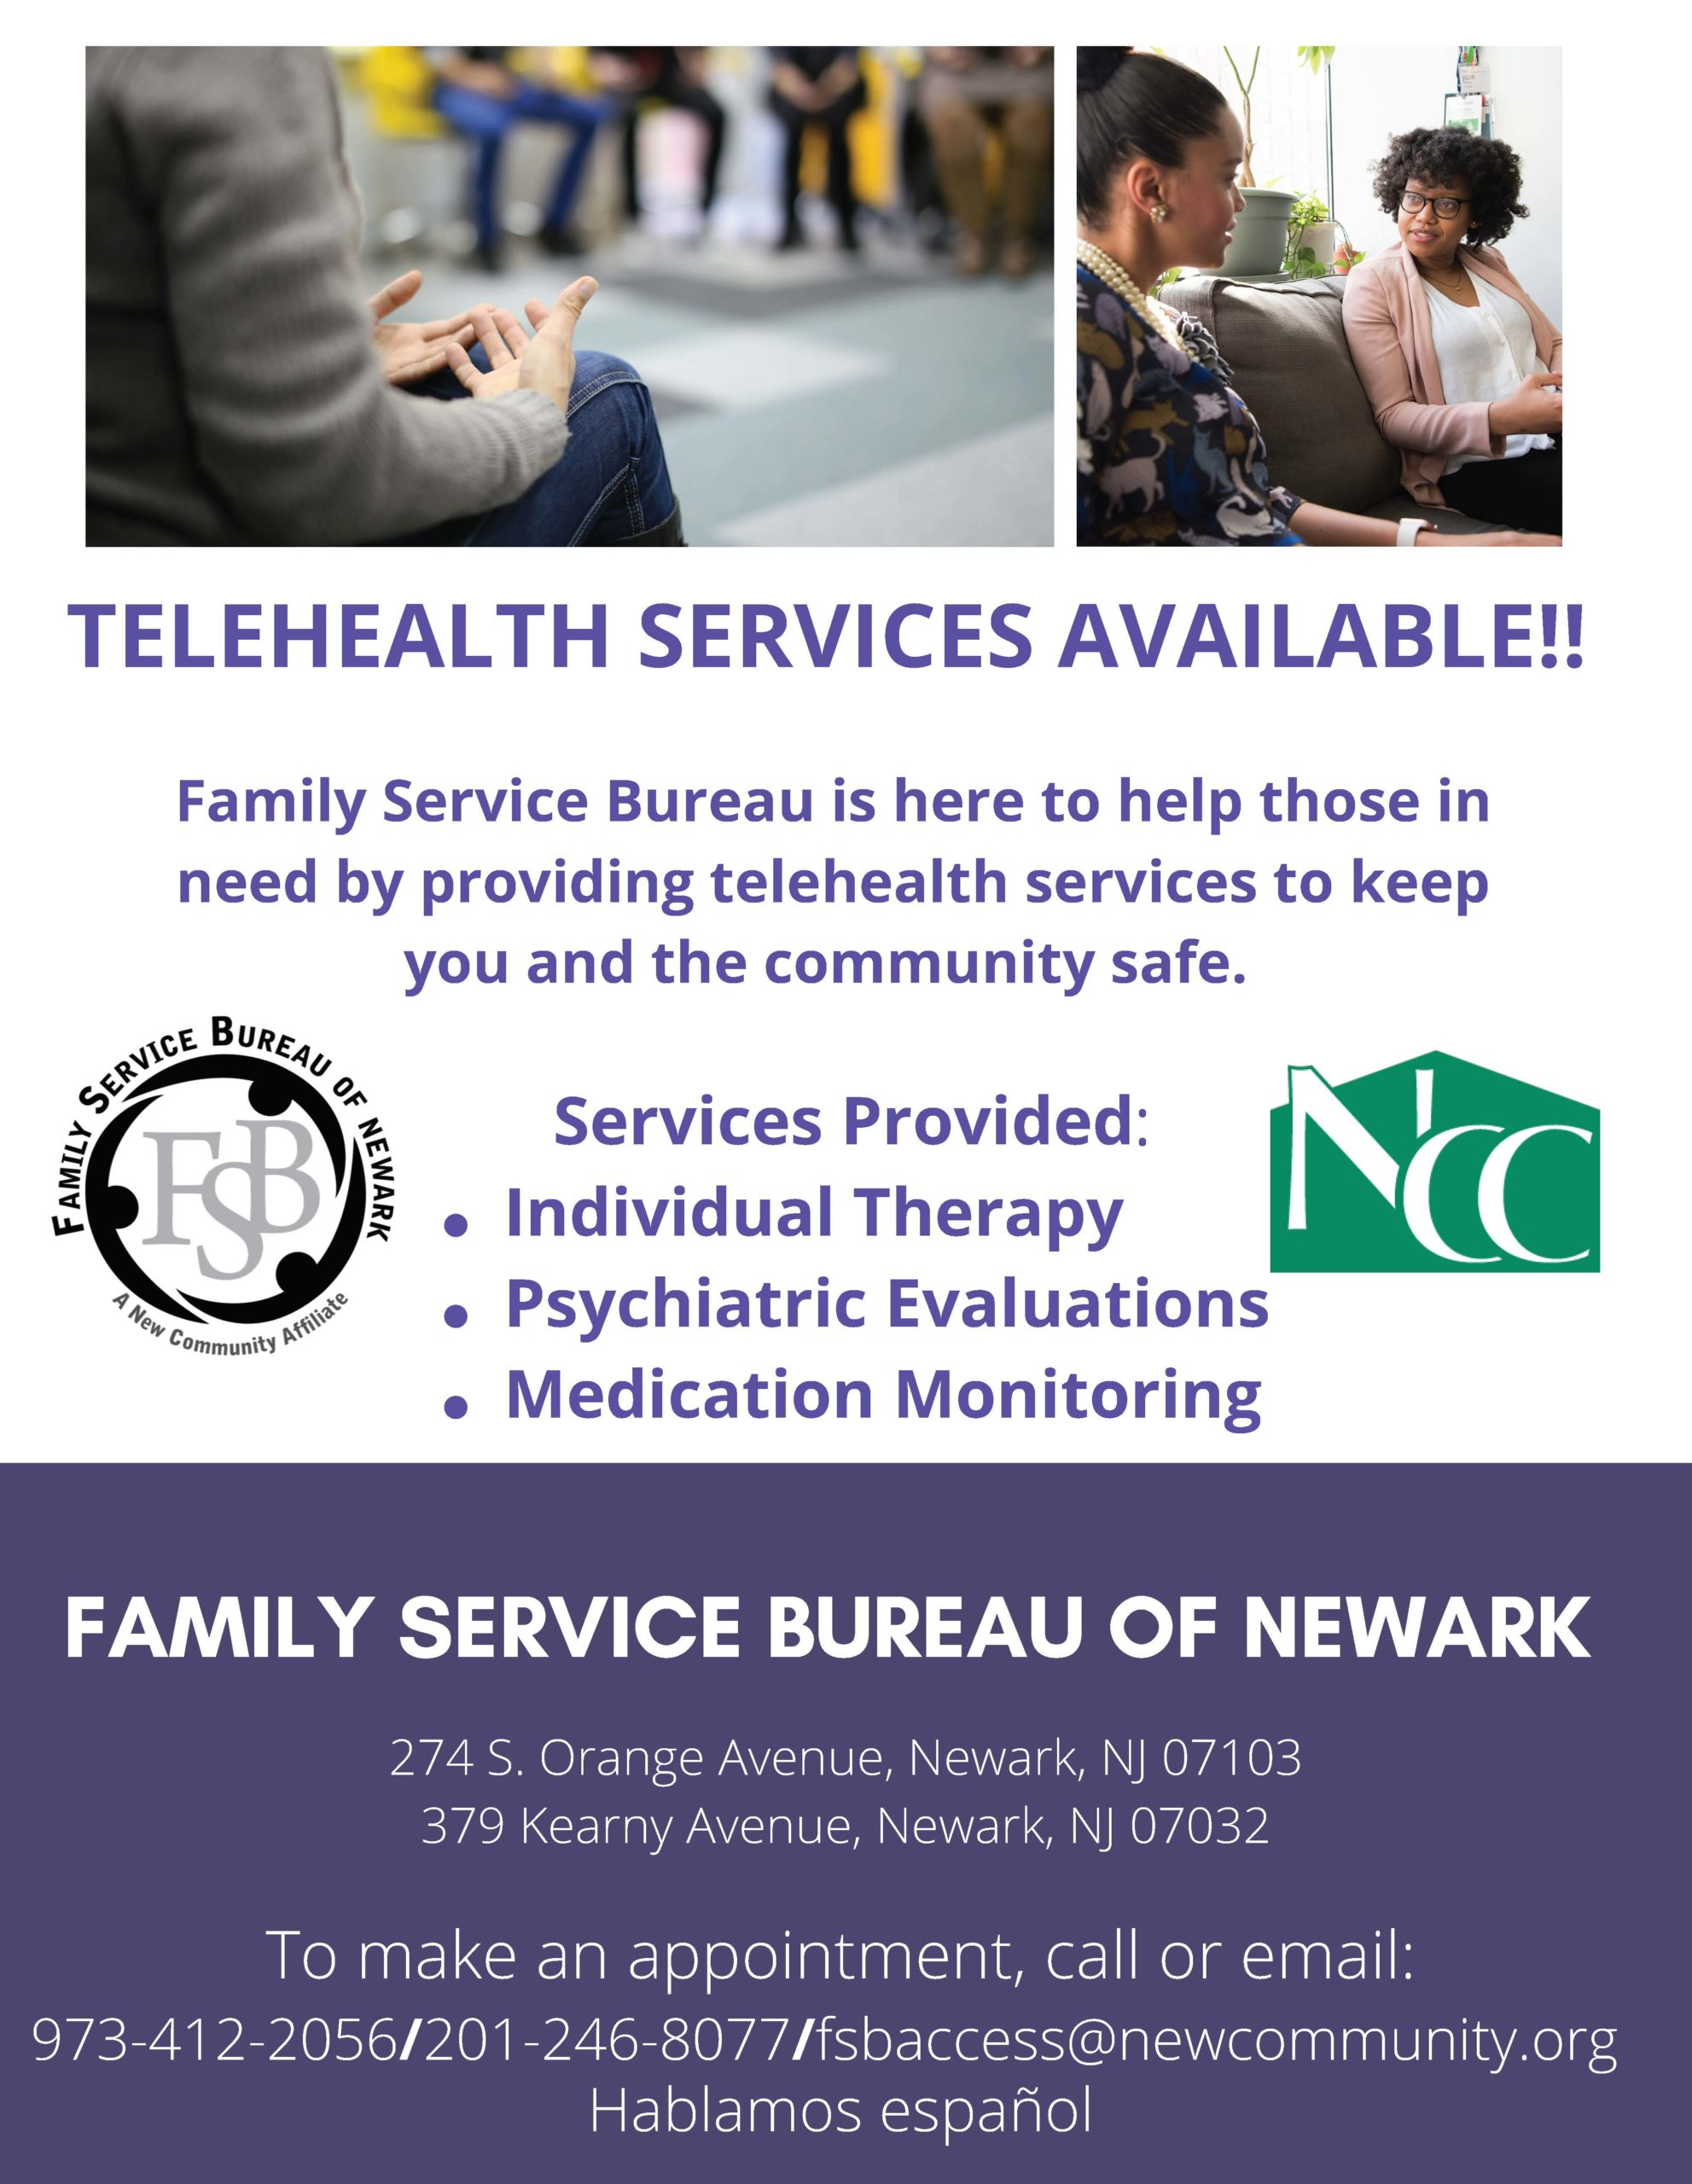 Due to the coronavirus pandemic, telehealth services are being provided. Click here for details.